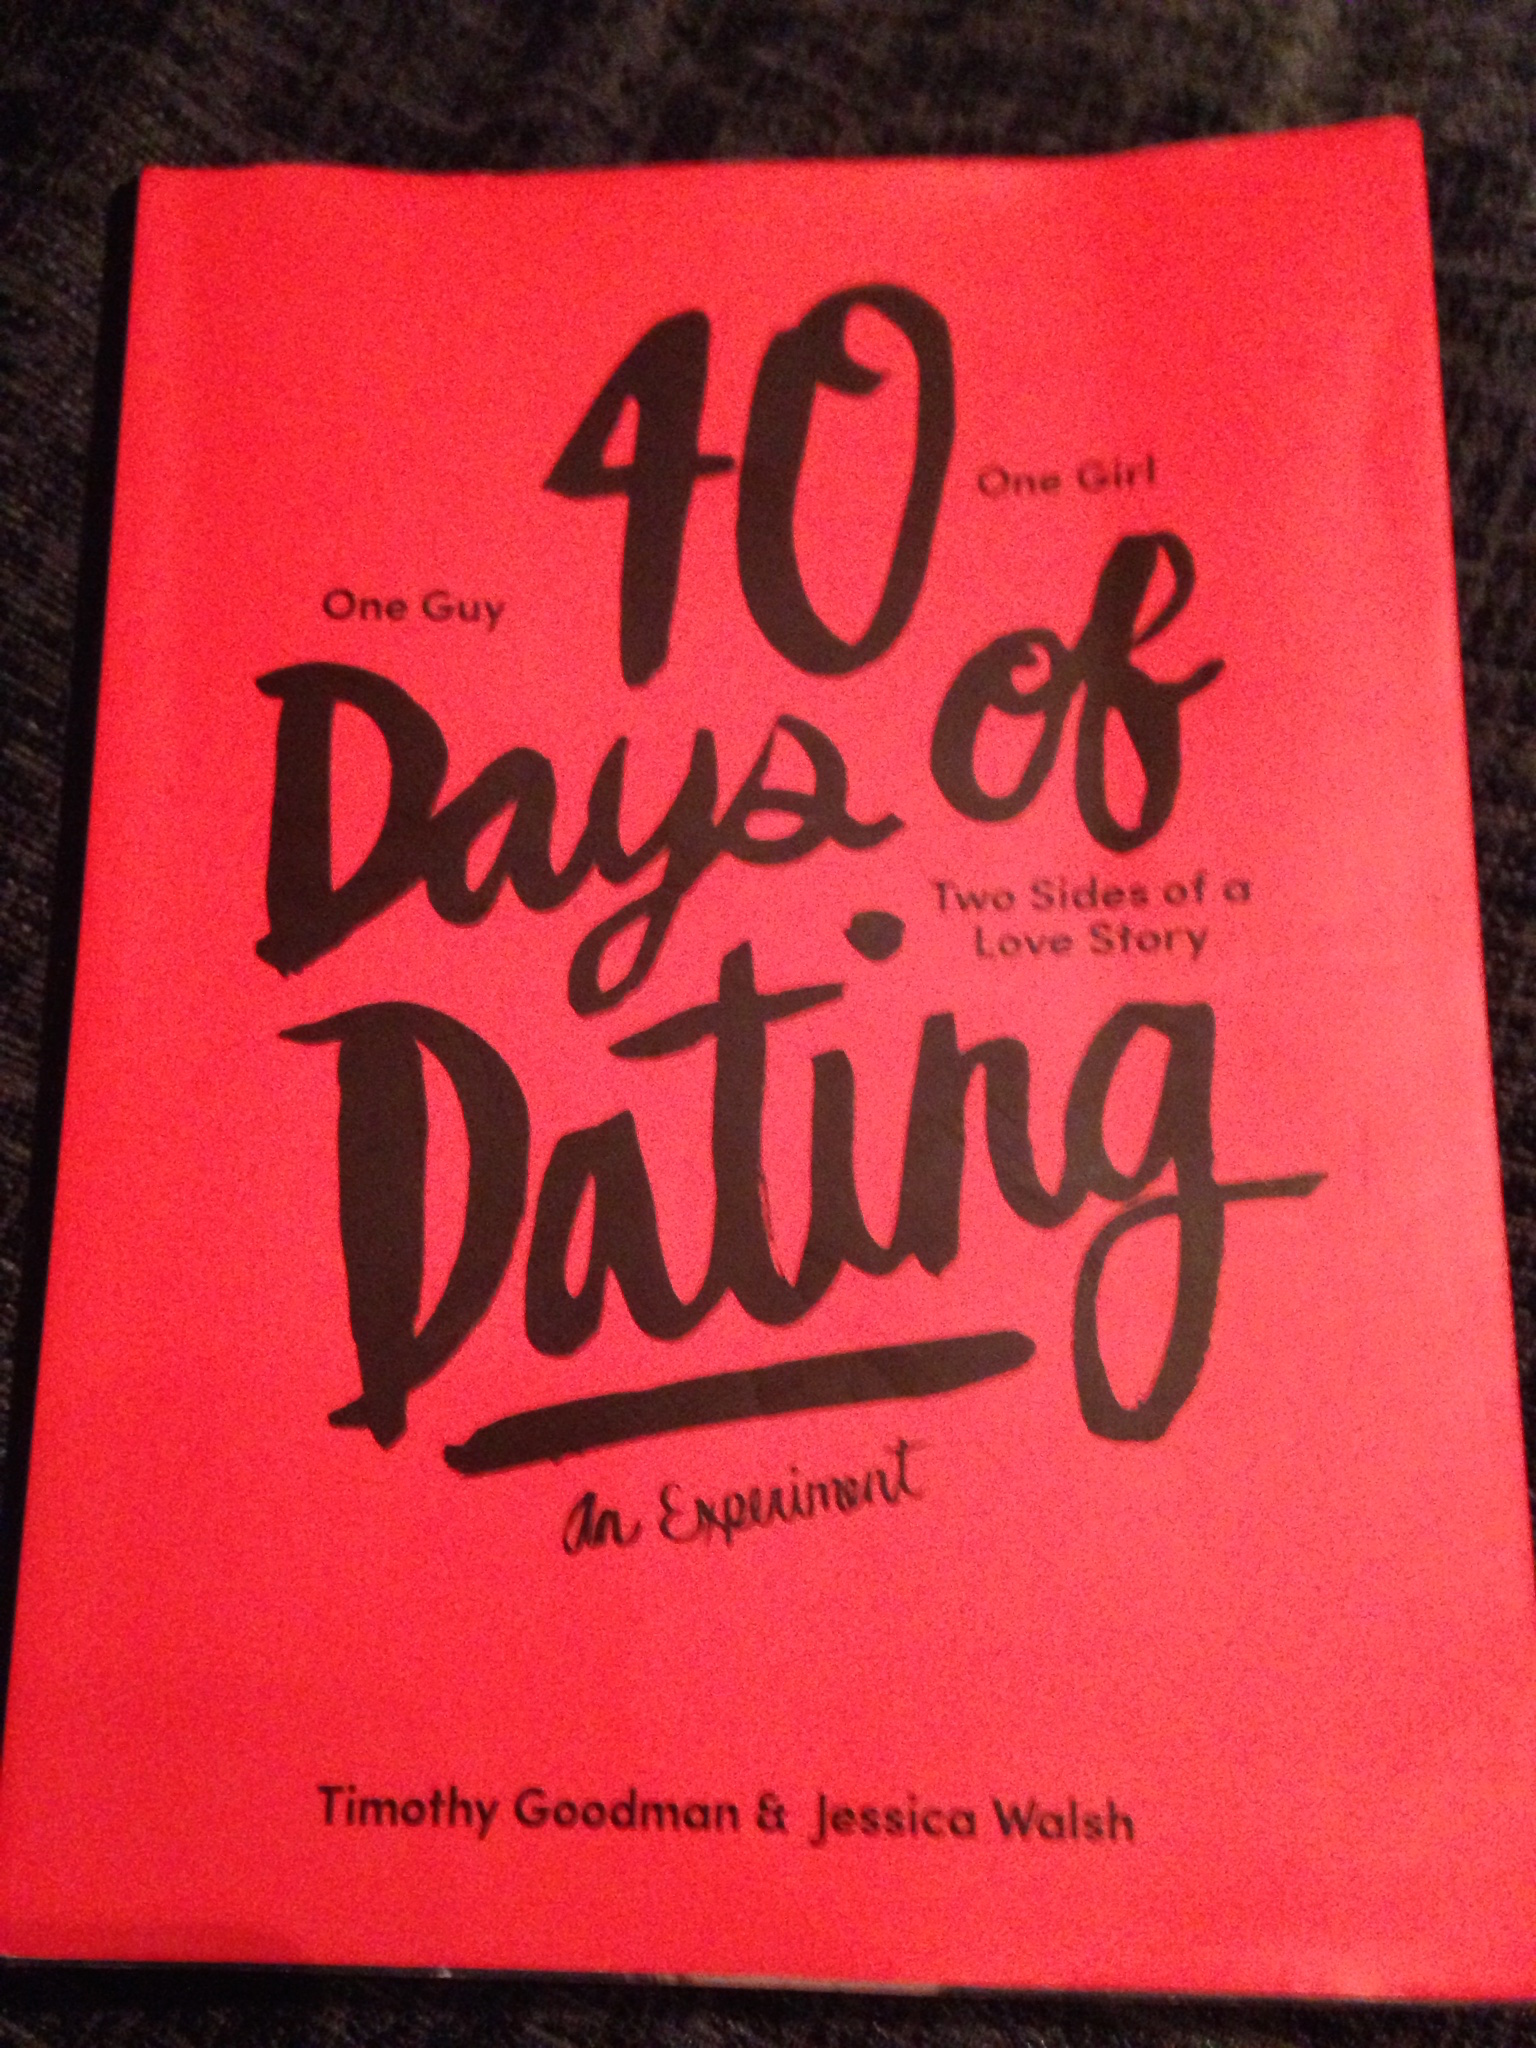 40 days of dating by jessica walsh and tim goodman